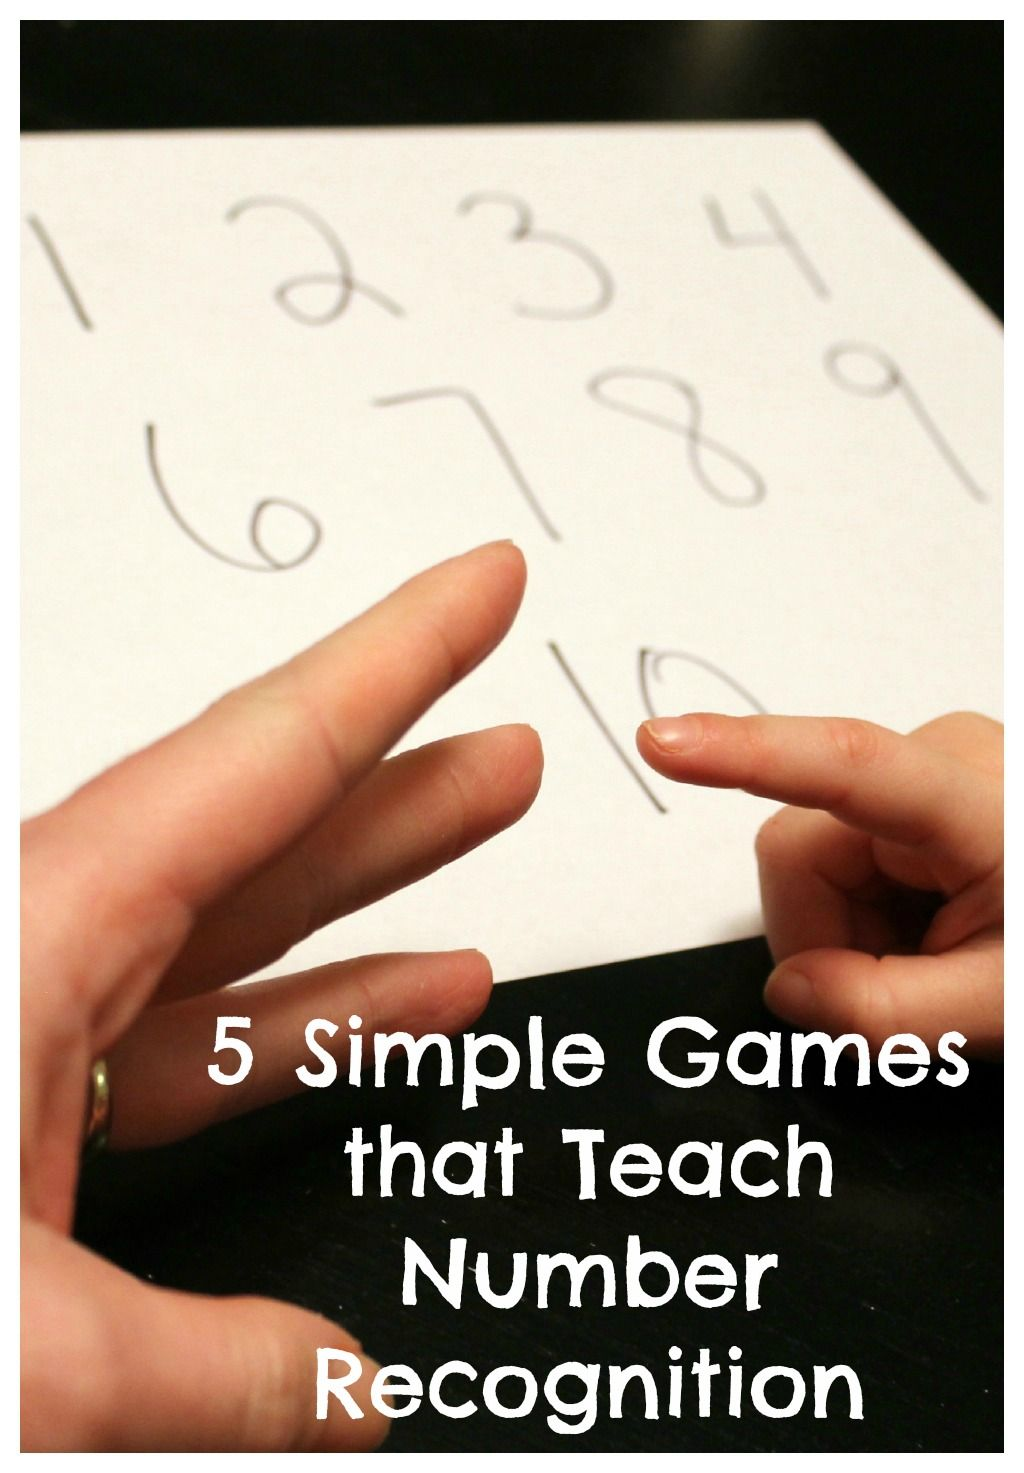 5 simple games for teaching number recognition to preschoolers ...